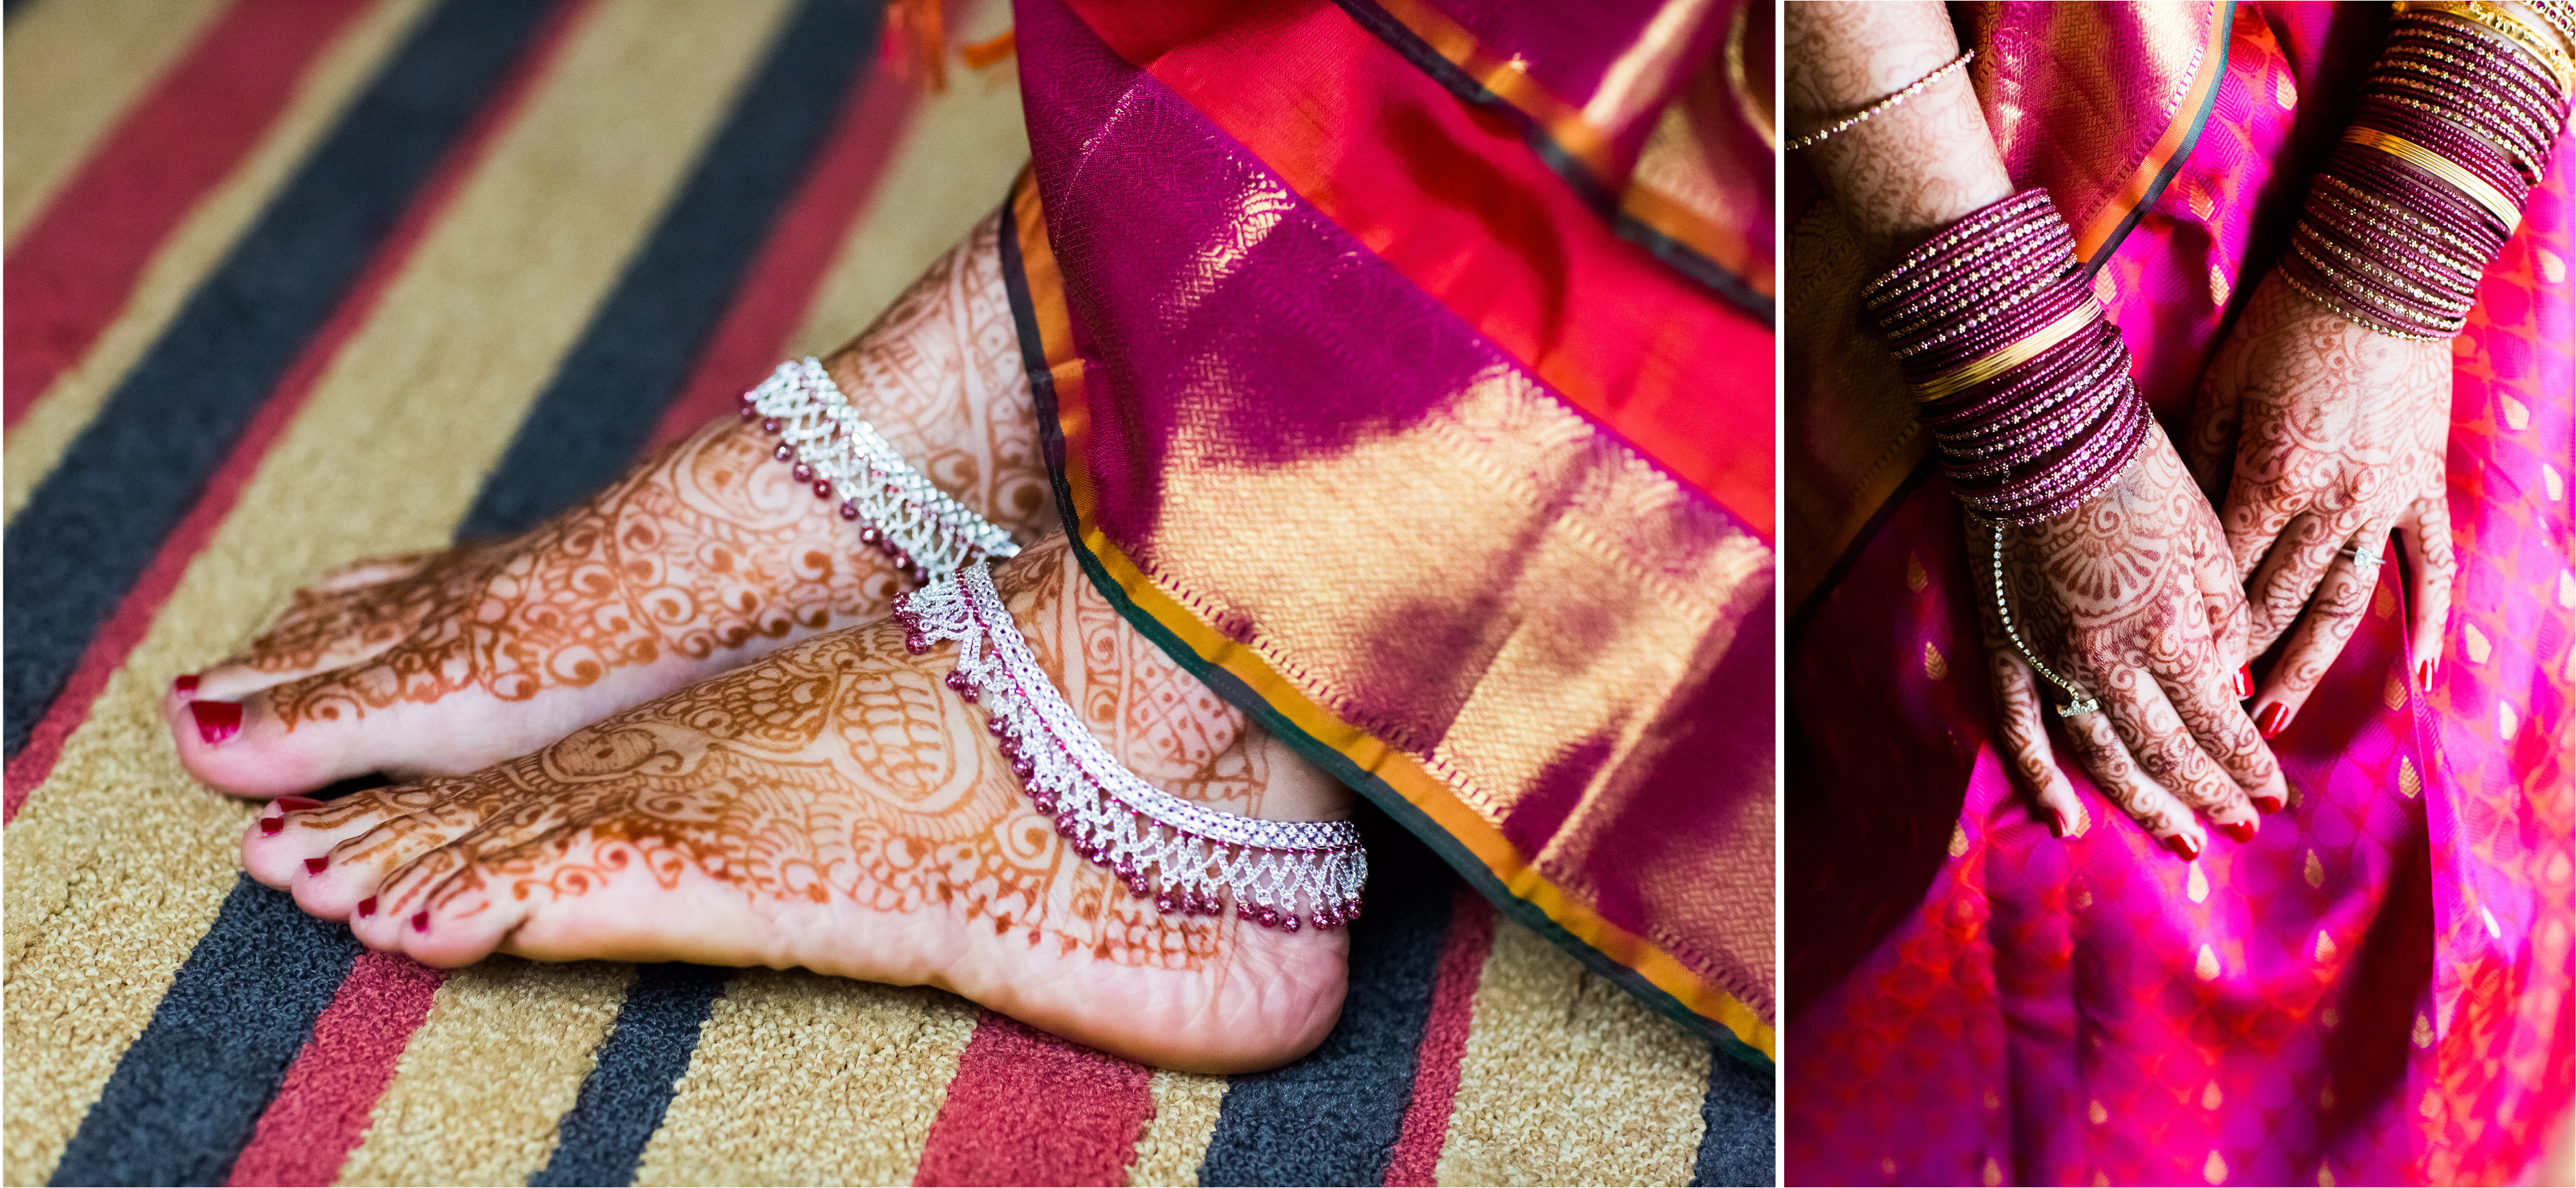 Emma_cleary_photography Indian Wedding3